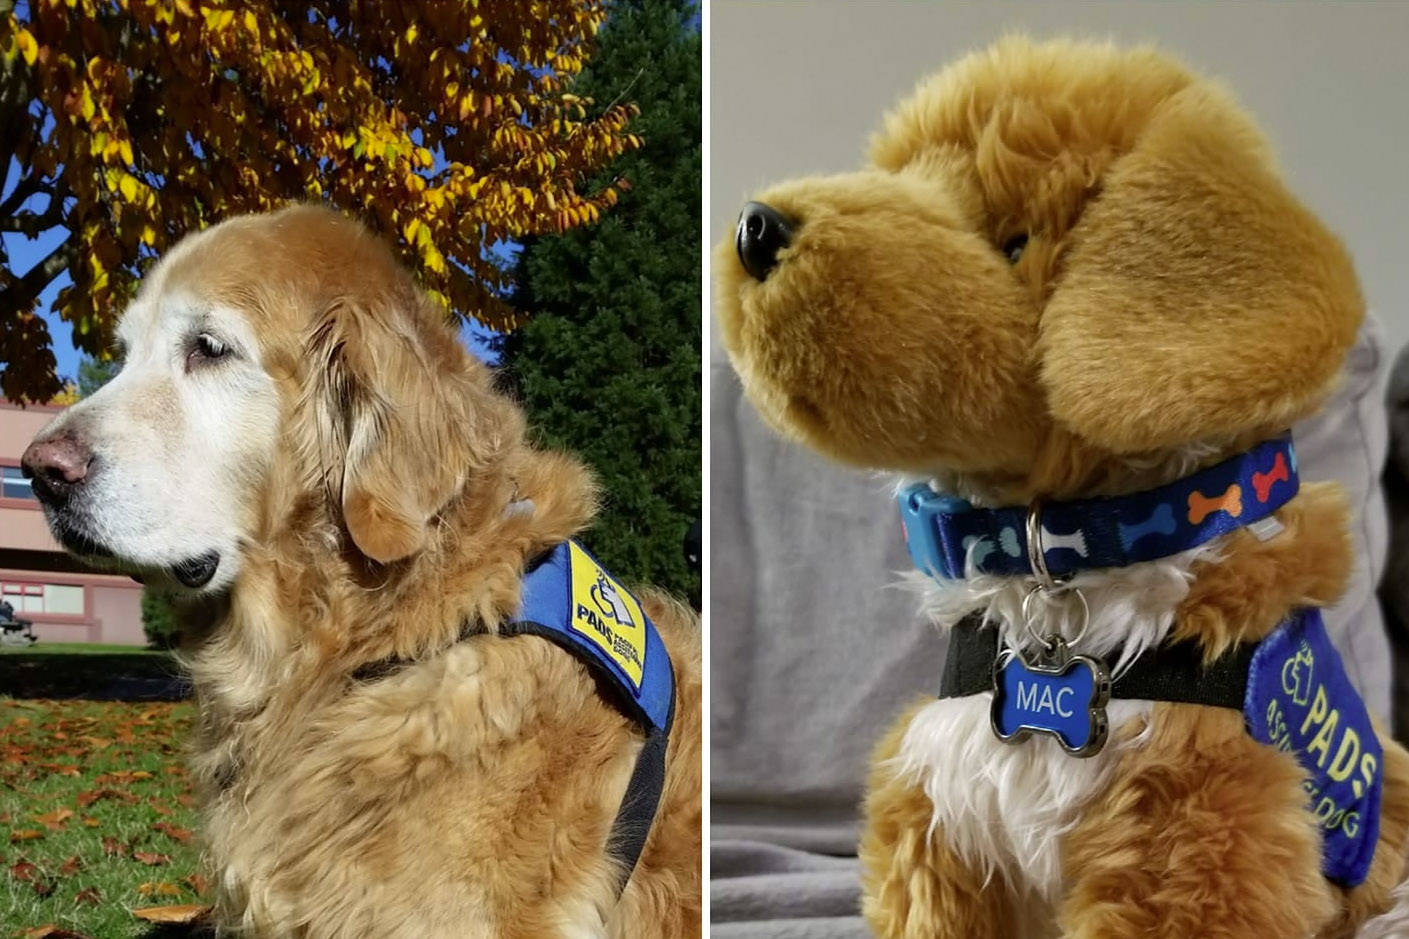 A plush stuffie has been made in memory of the late Mac the therapy dog who worked at University of the Fraser Valley. It is a fundraiser for Pacific Assistance Dogs Society (PADS). (Facebook/UFV PADS Canine Counsellor Mac)